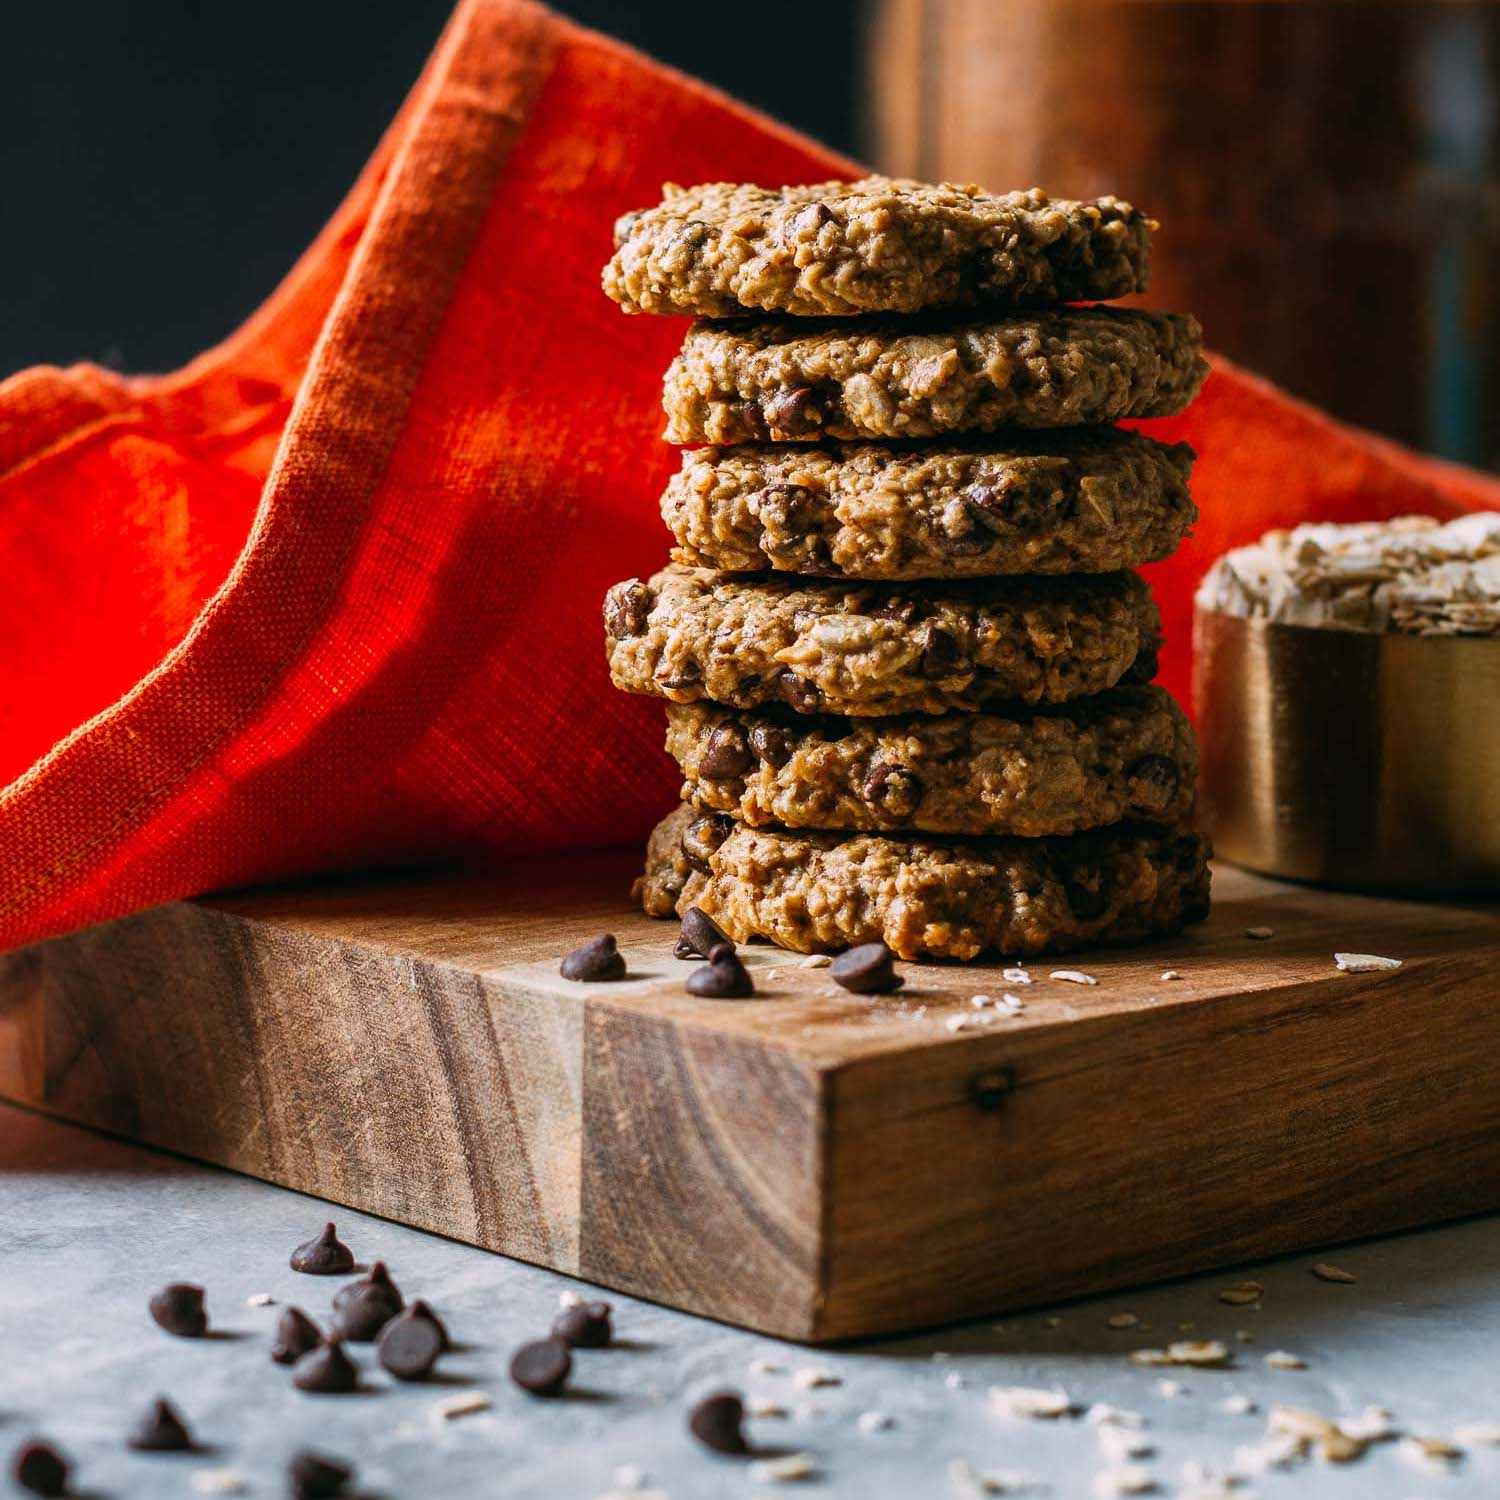 Chewy Chocolate Chip Oatmeal Cookies #harvest #cookies #recipe #nut-free #nondairy #dessert #snack #sweets | Veeg